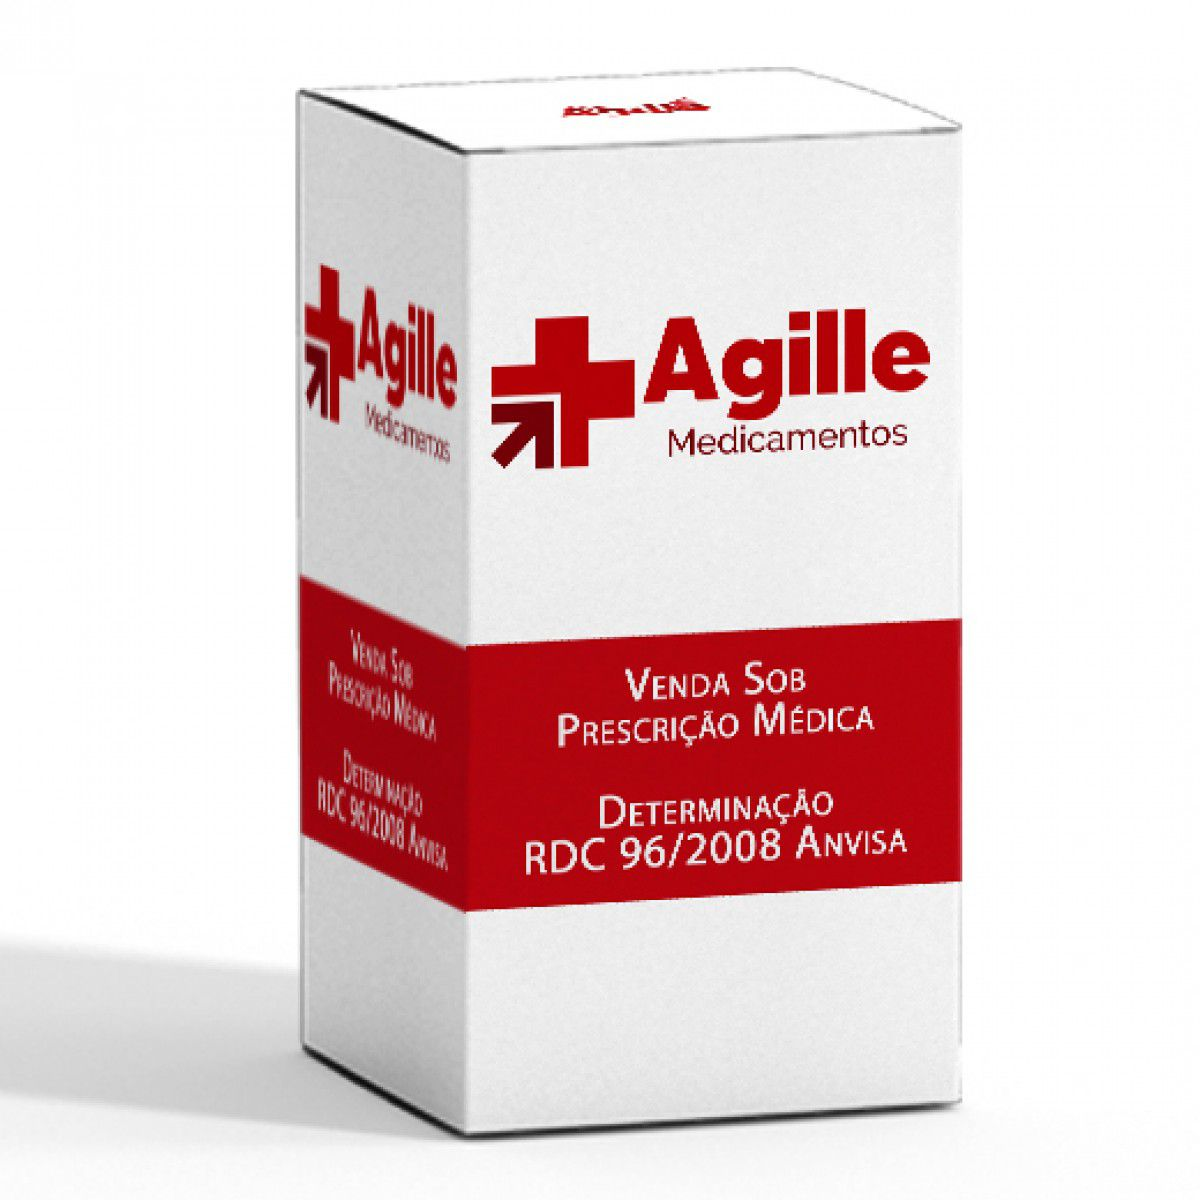 EXJADE 125mg cx 28 comp  - Agille Speciality